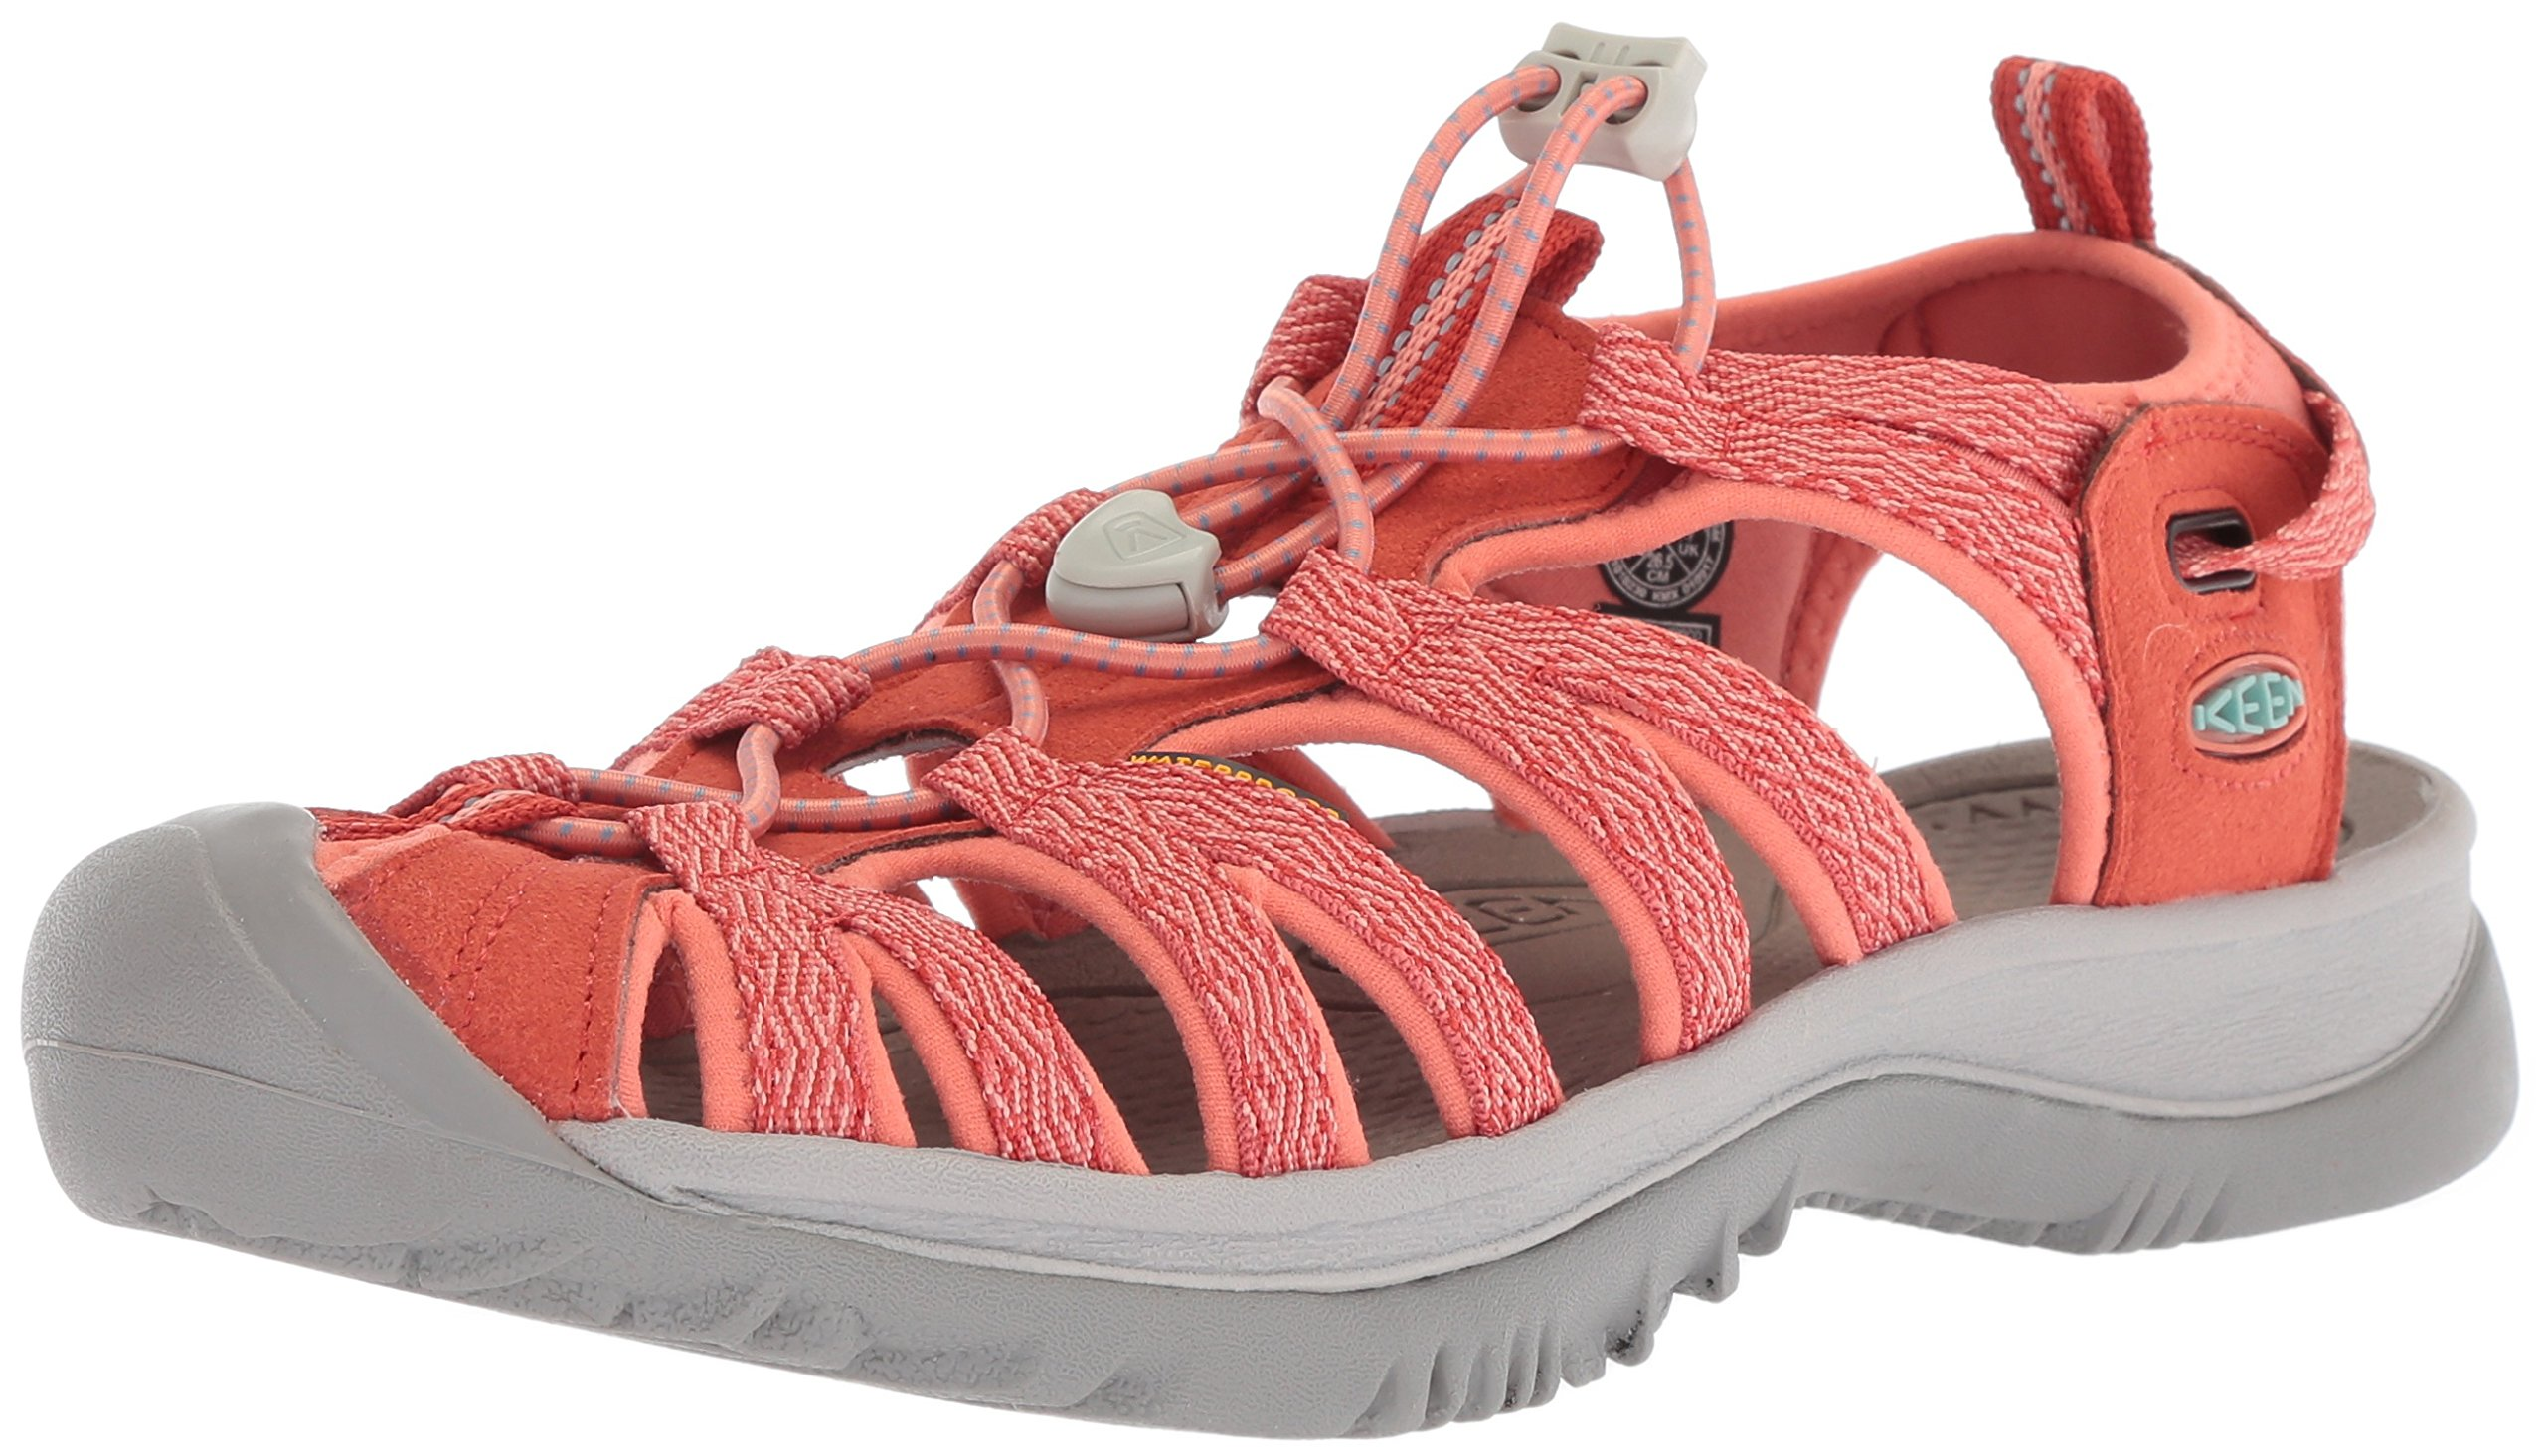 KEEN Women's Whisper-W Sandal, Summer Fig/Crabapple, 10.5 M US